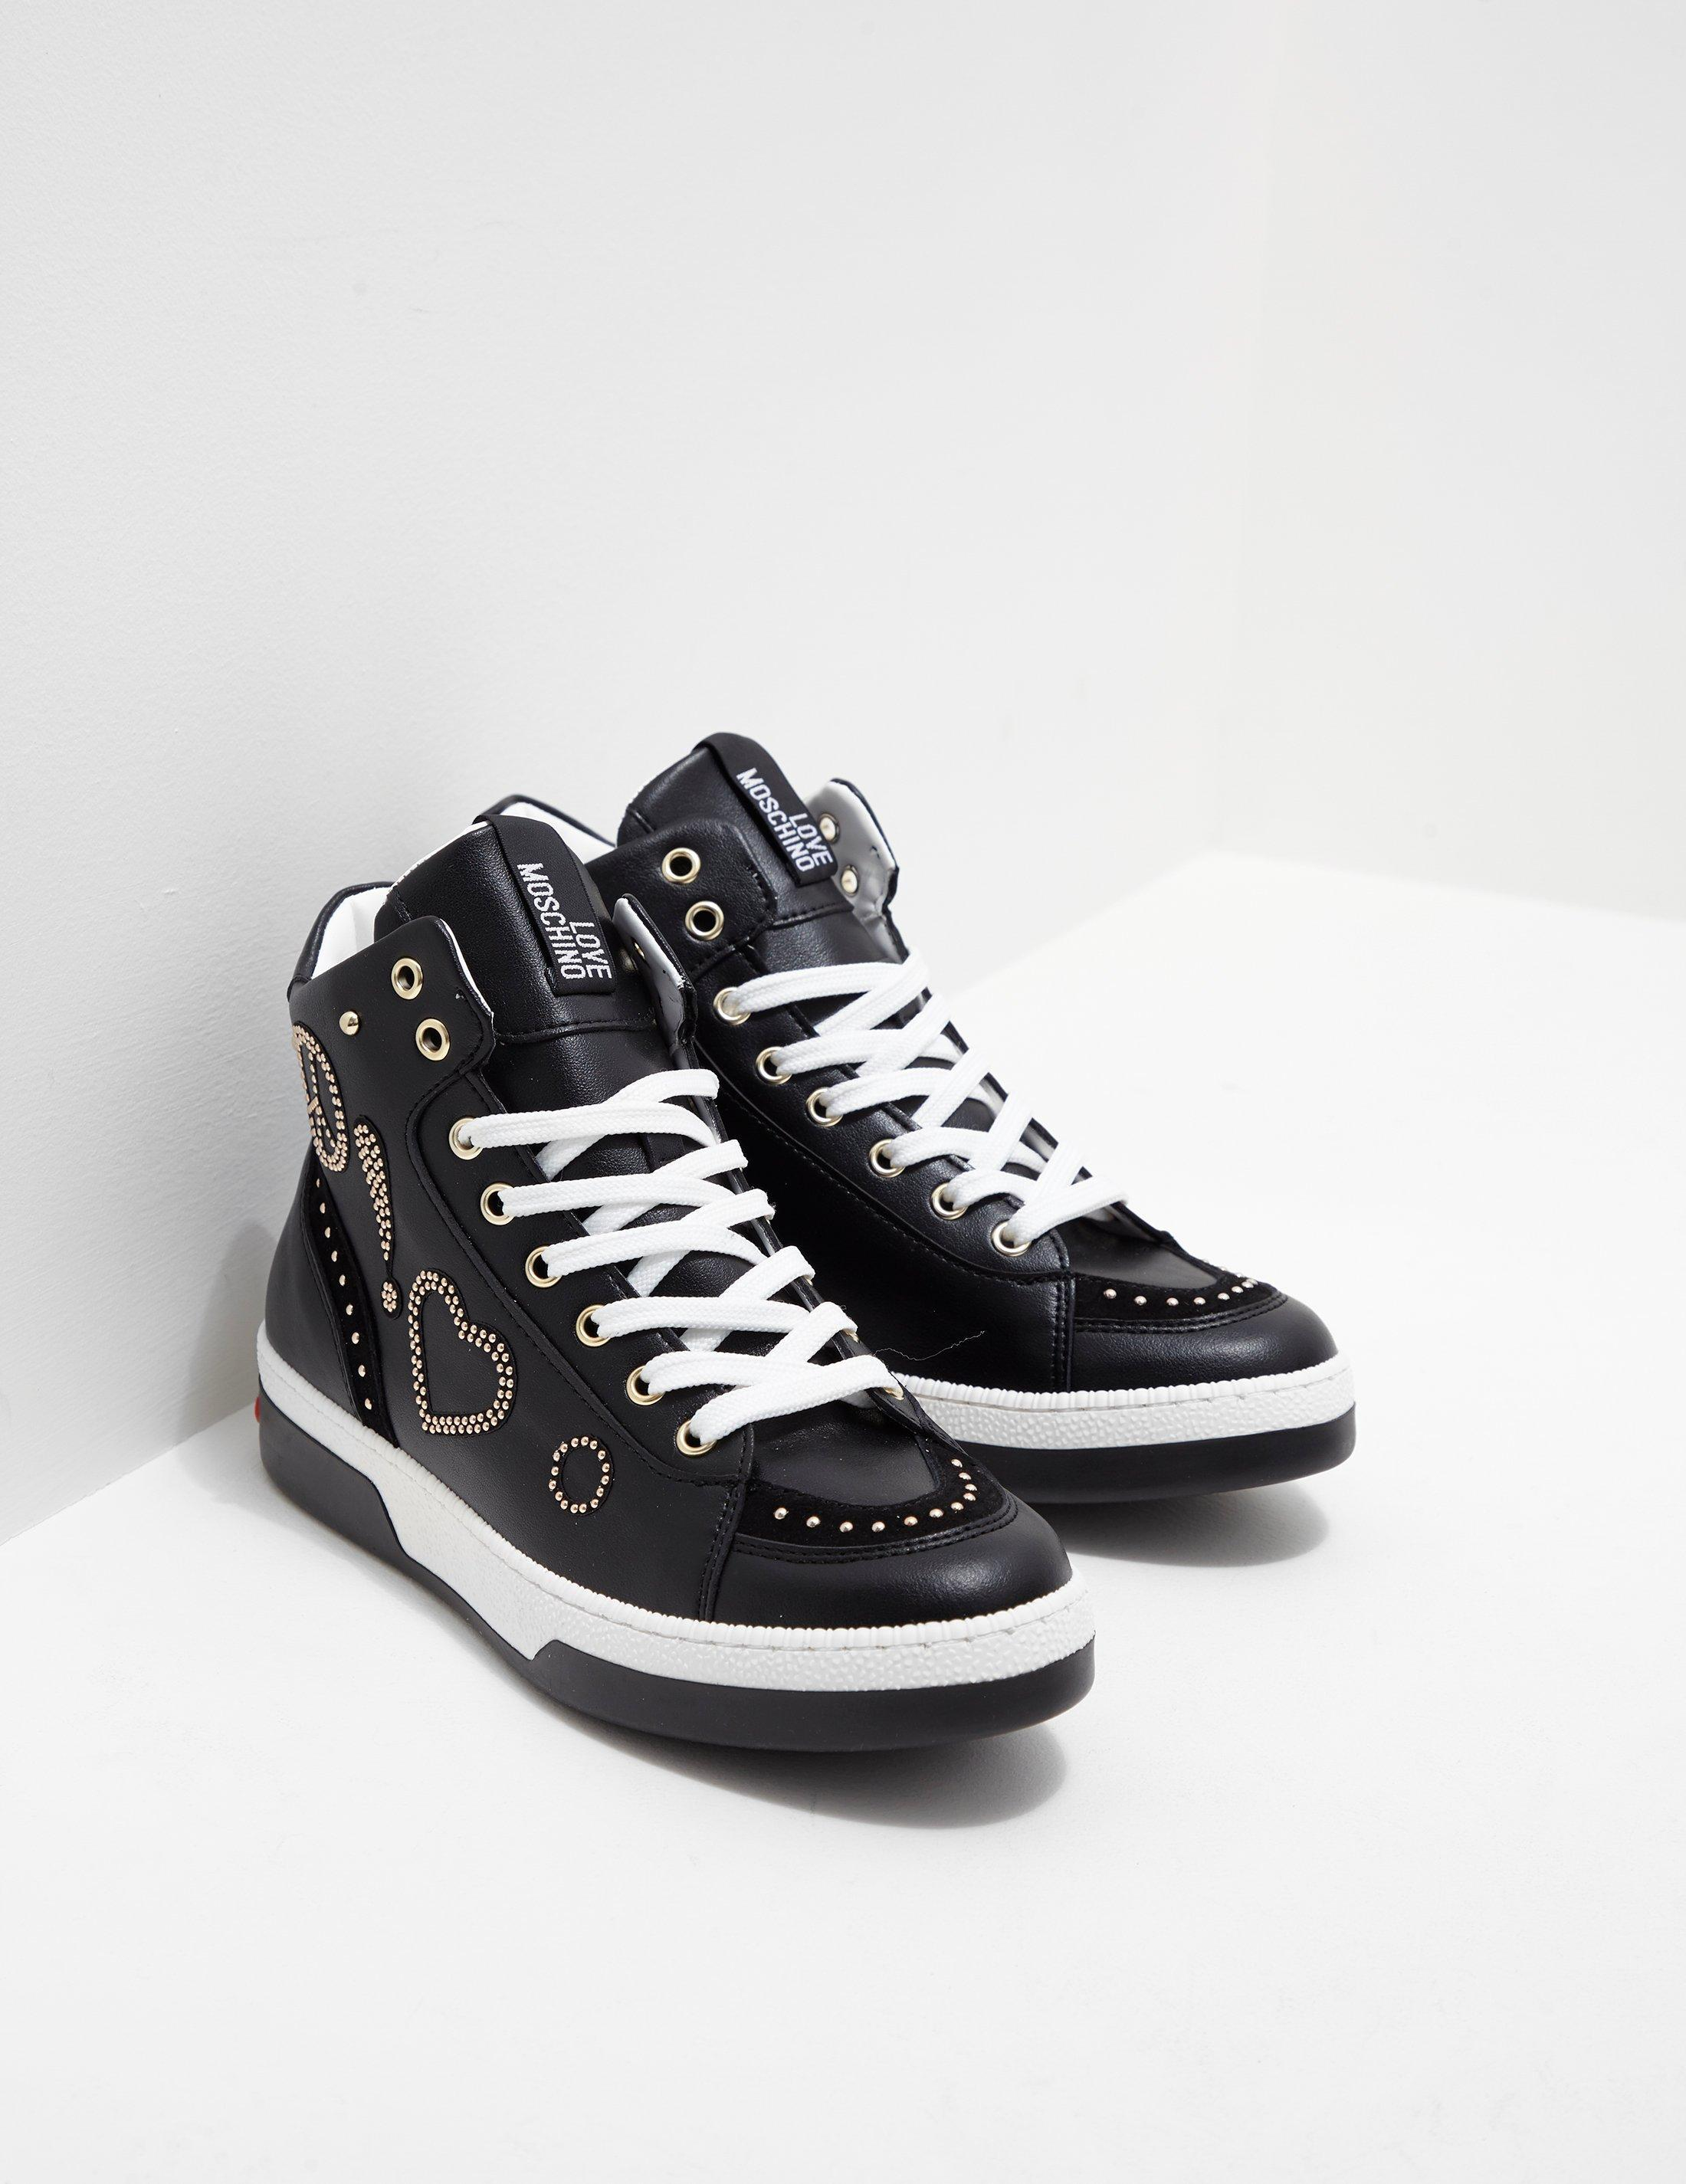 19f65c5ea1 Lyst - Love Moschino Womens Stud High Top Trainers - Online ...